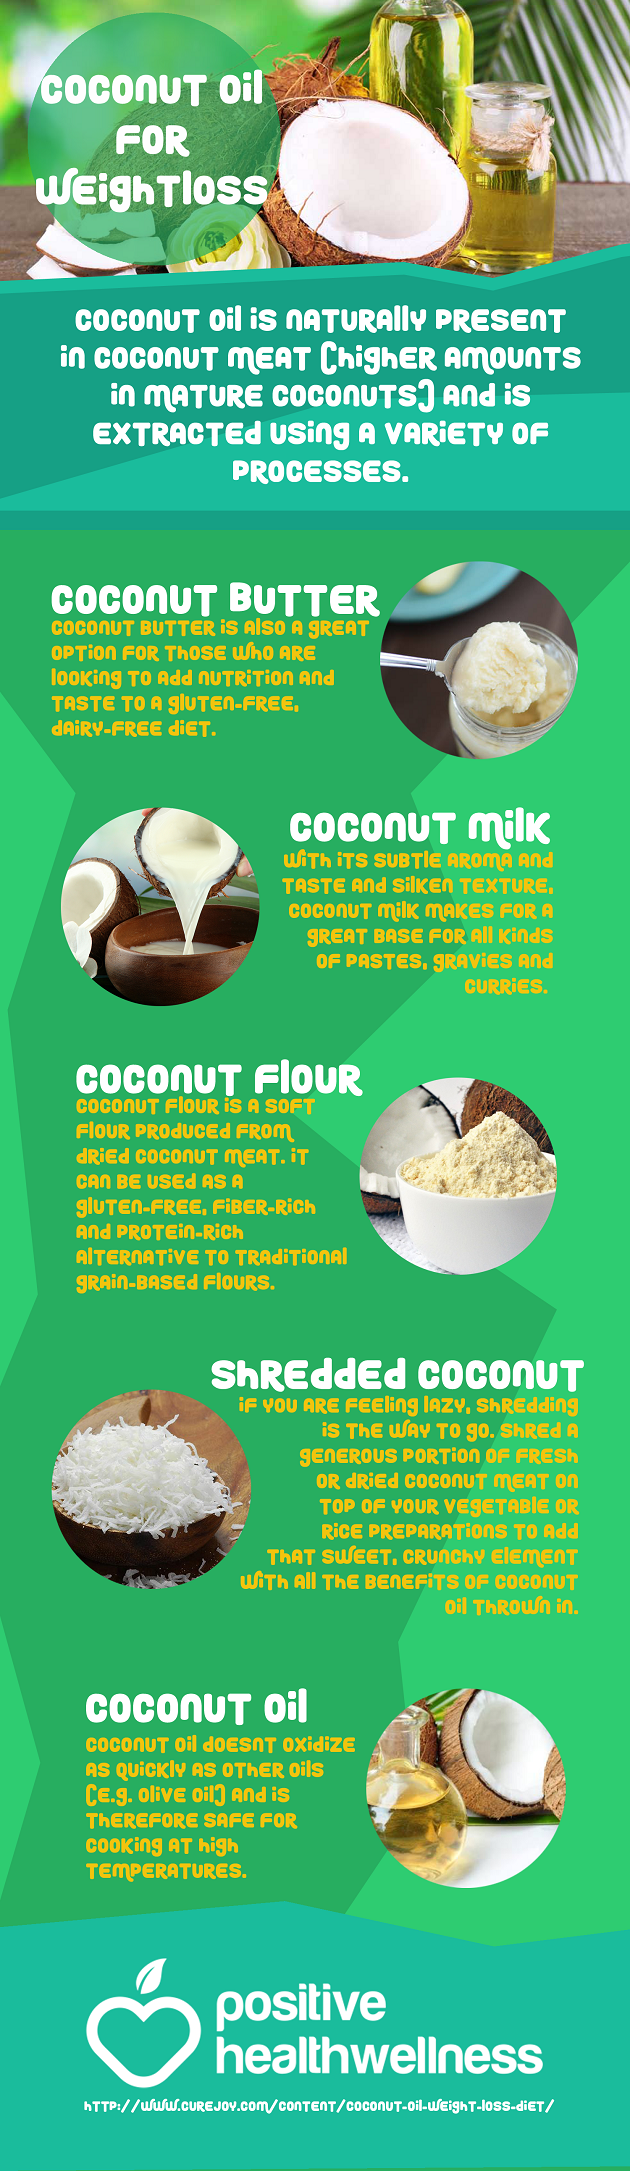 coconut-oil-for-weight-loss-infographic